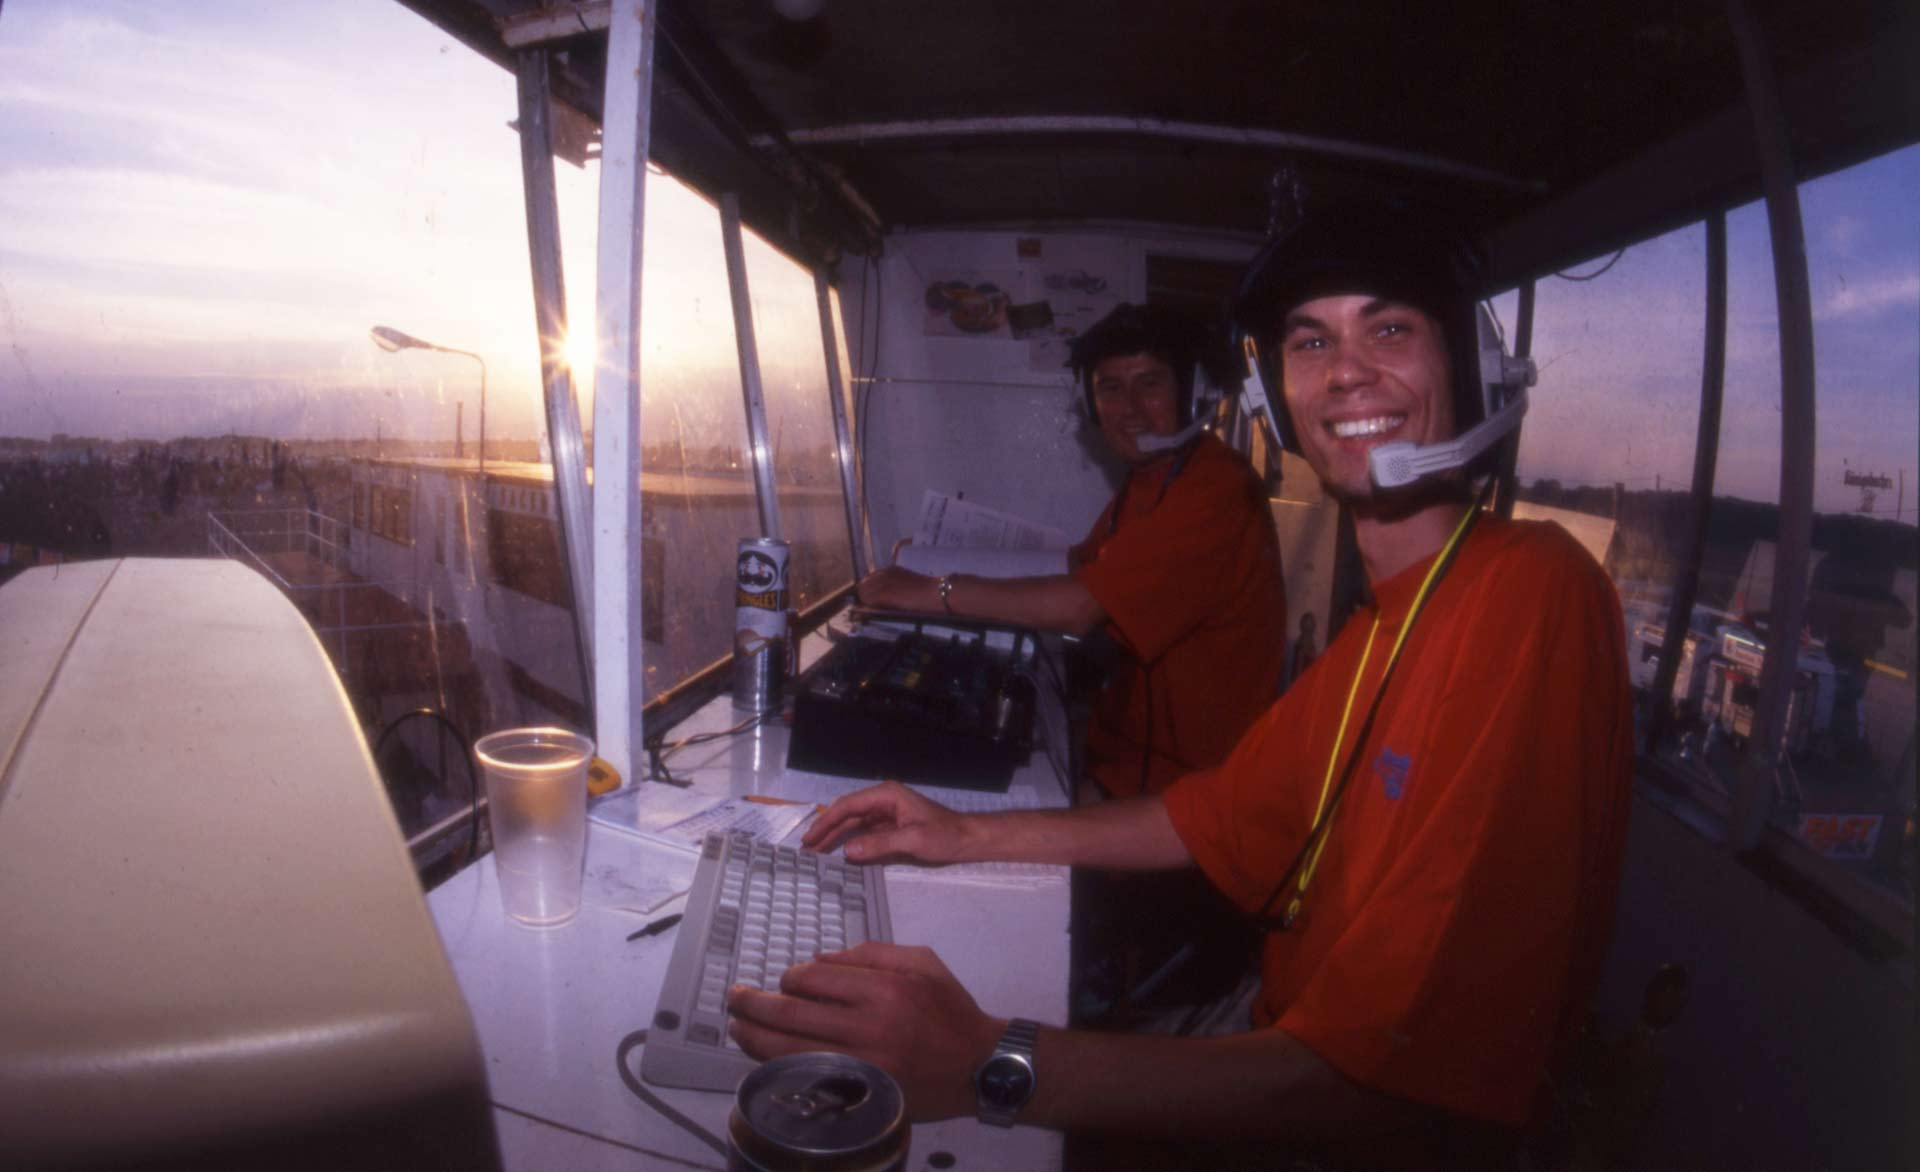 Andrew Noakes and David Roberts at Santa Pod commentating on the Fast Car UFC'95 event